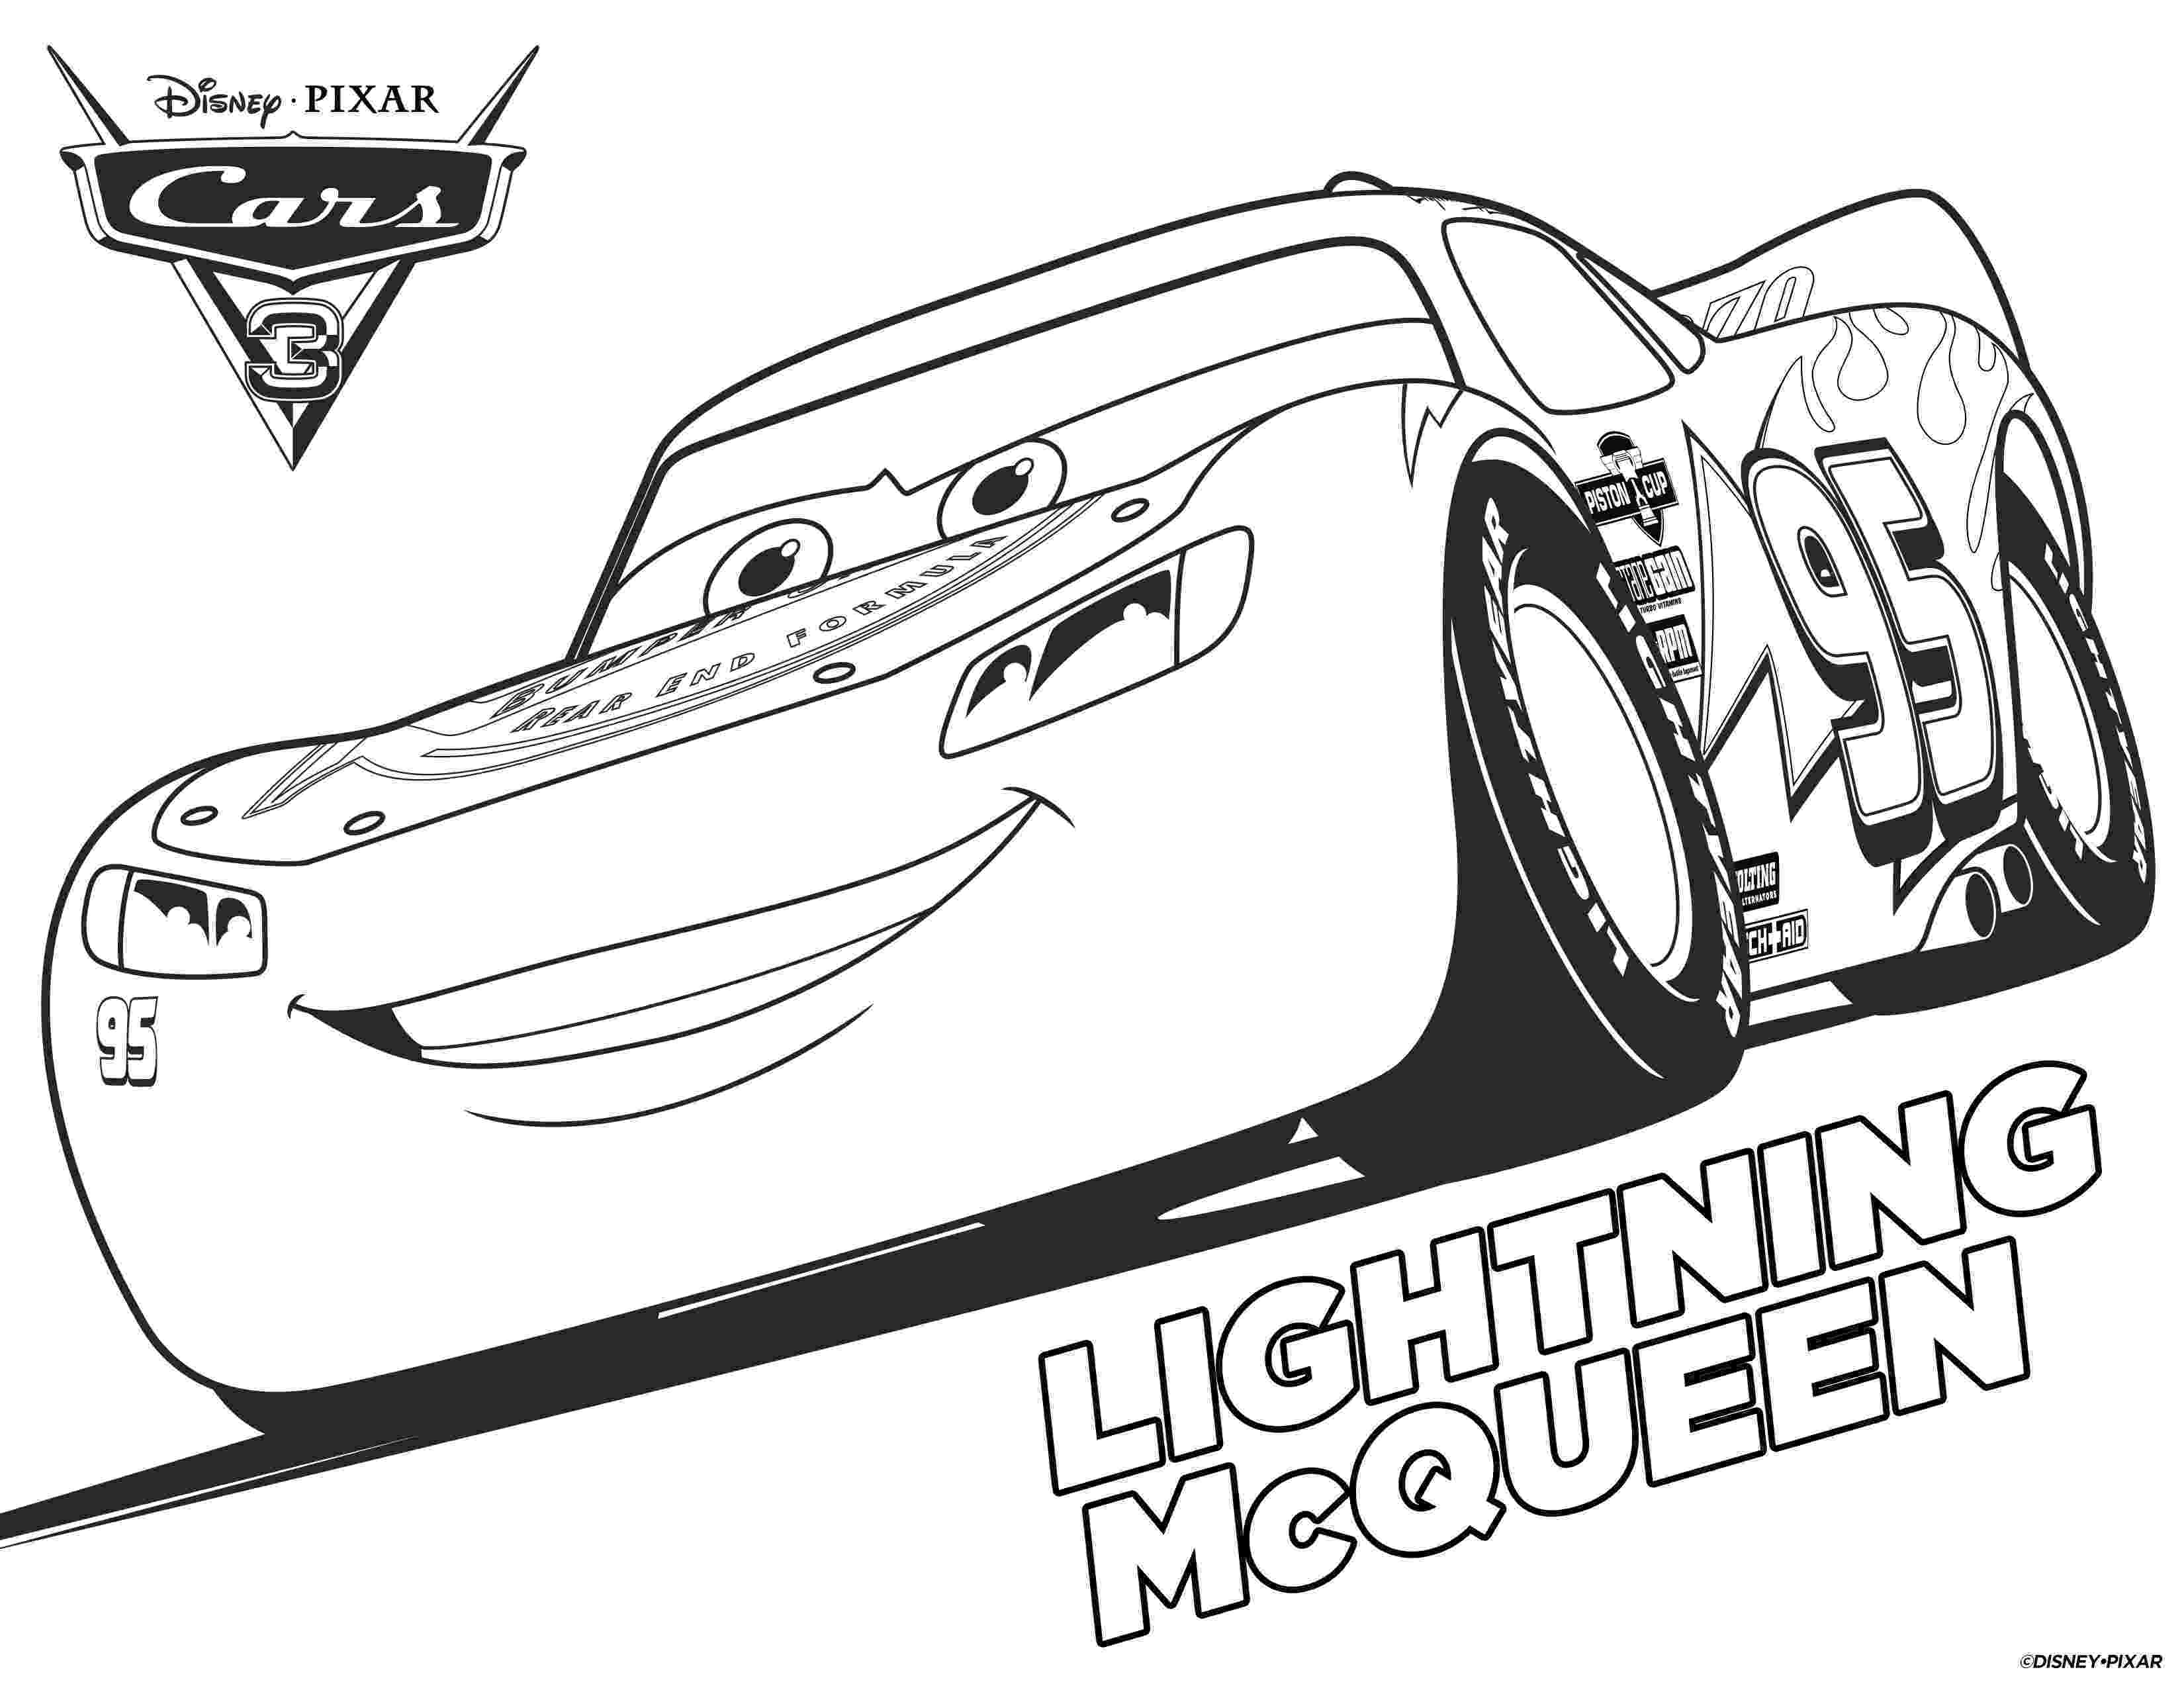 disney cars printable coloring pages disney cars coloring pages printable best gift ideas blog disney printable coloring pages cars